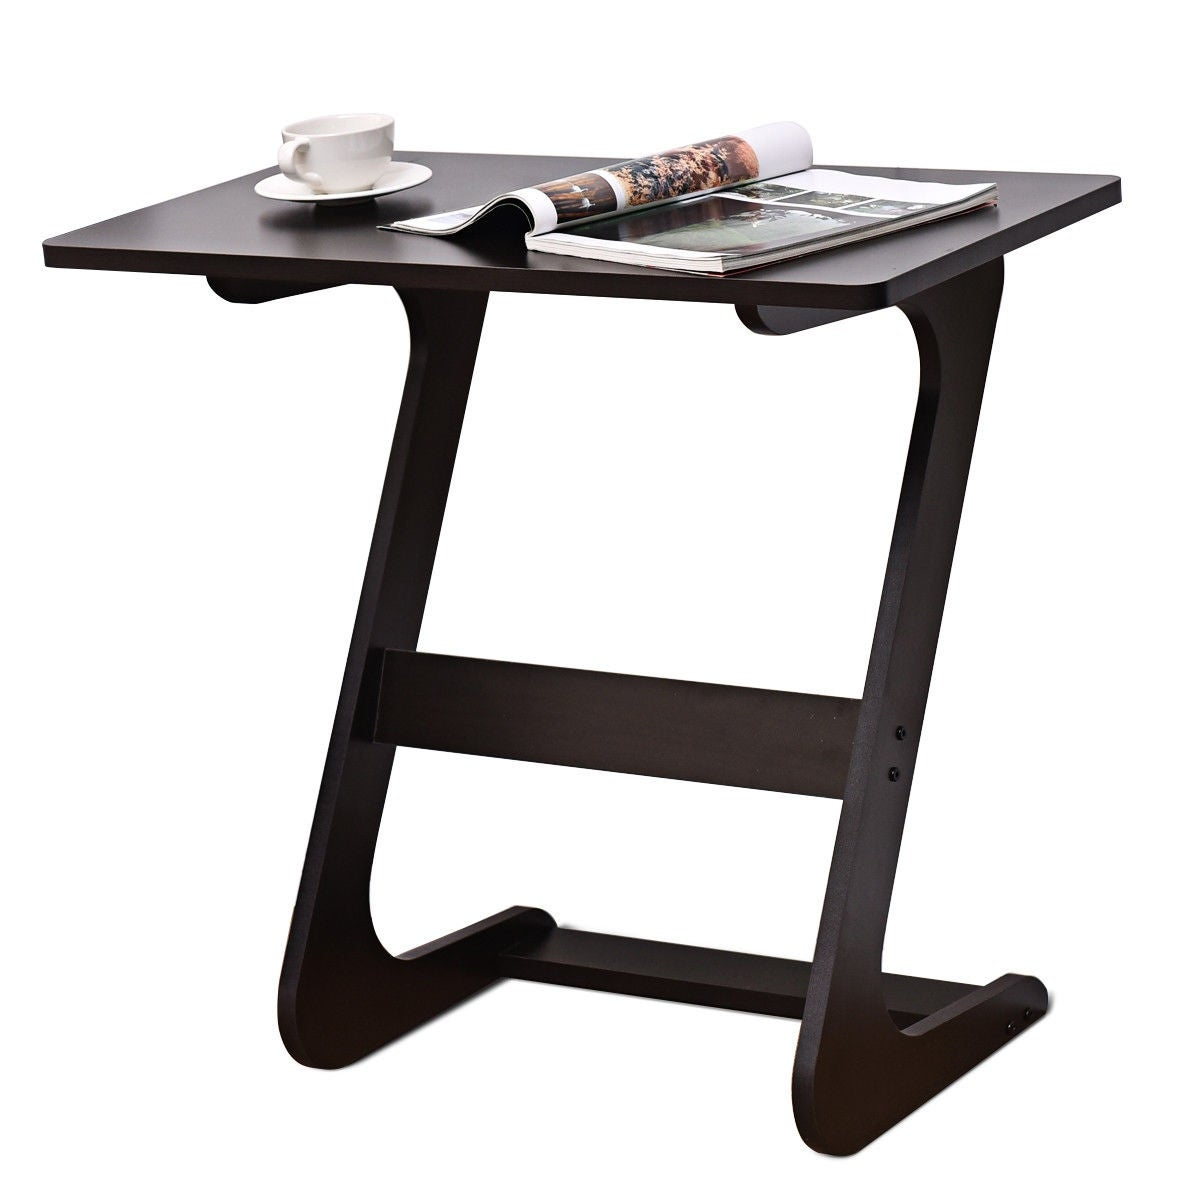 Tv Side Table.Costway Sofa Table End Side Table Console Snack Tv Coffee Tray Pc Laptop Desk Z Shape